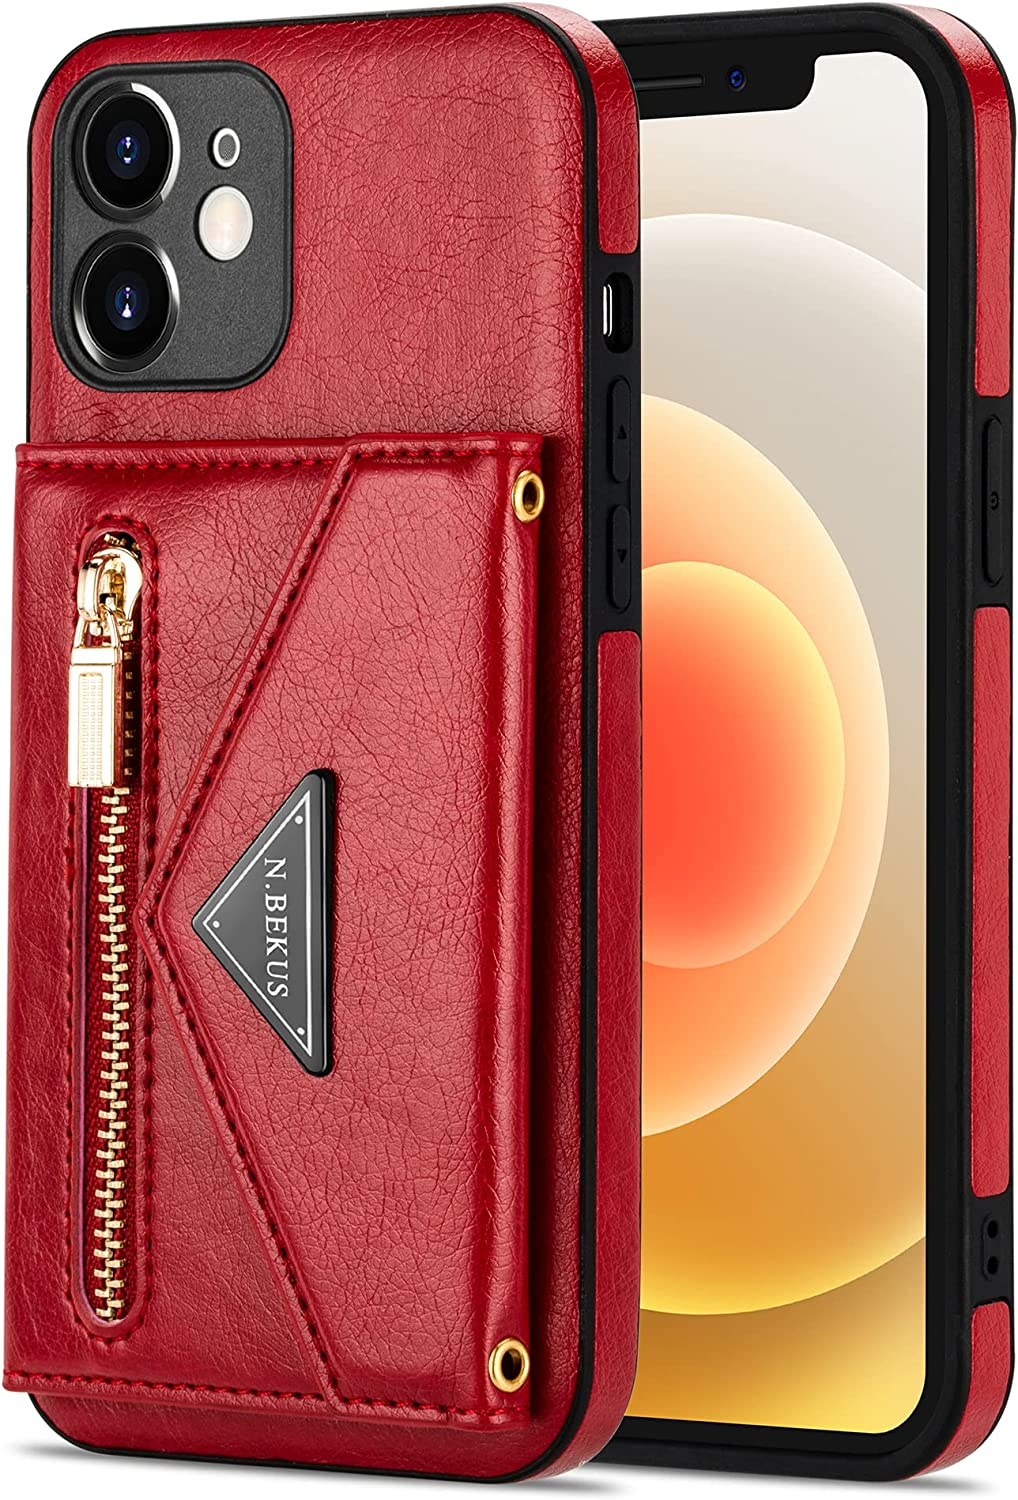 Crossbody Wallet Case for Samsung Galaxy A12 5G with Card Holder, Zipper Back Flip Card Slot Protector Shockproof Purse PU Leather Cover with Removable Cross Body Strap (Red)